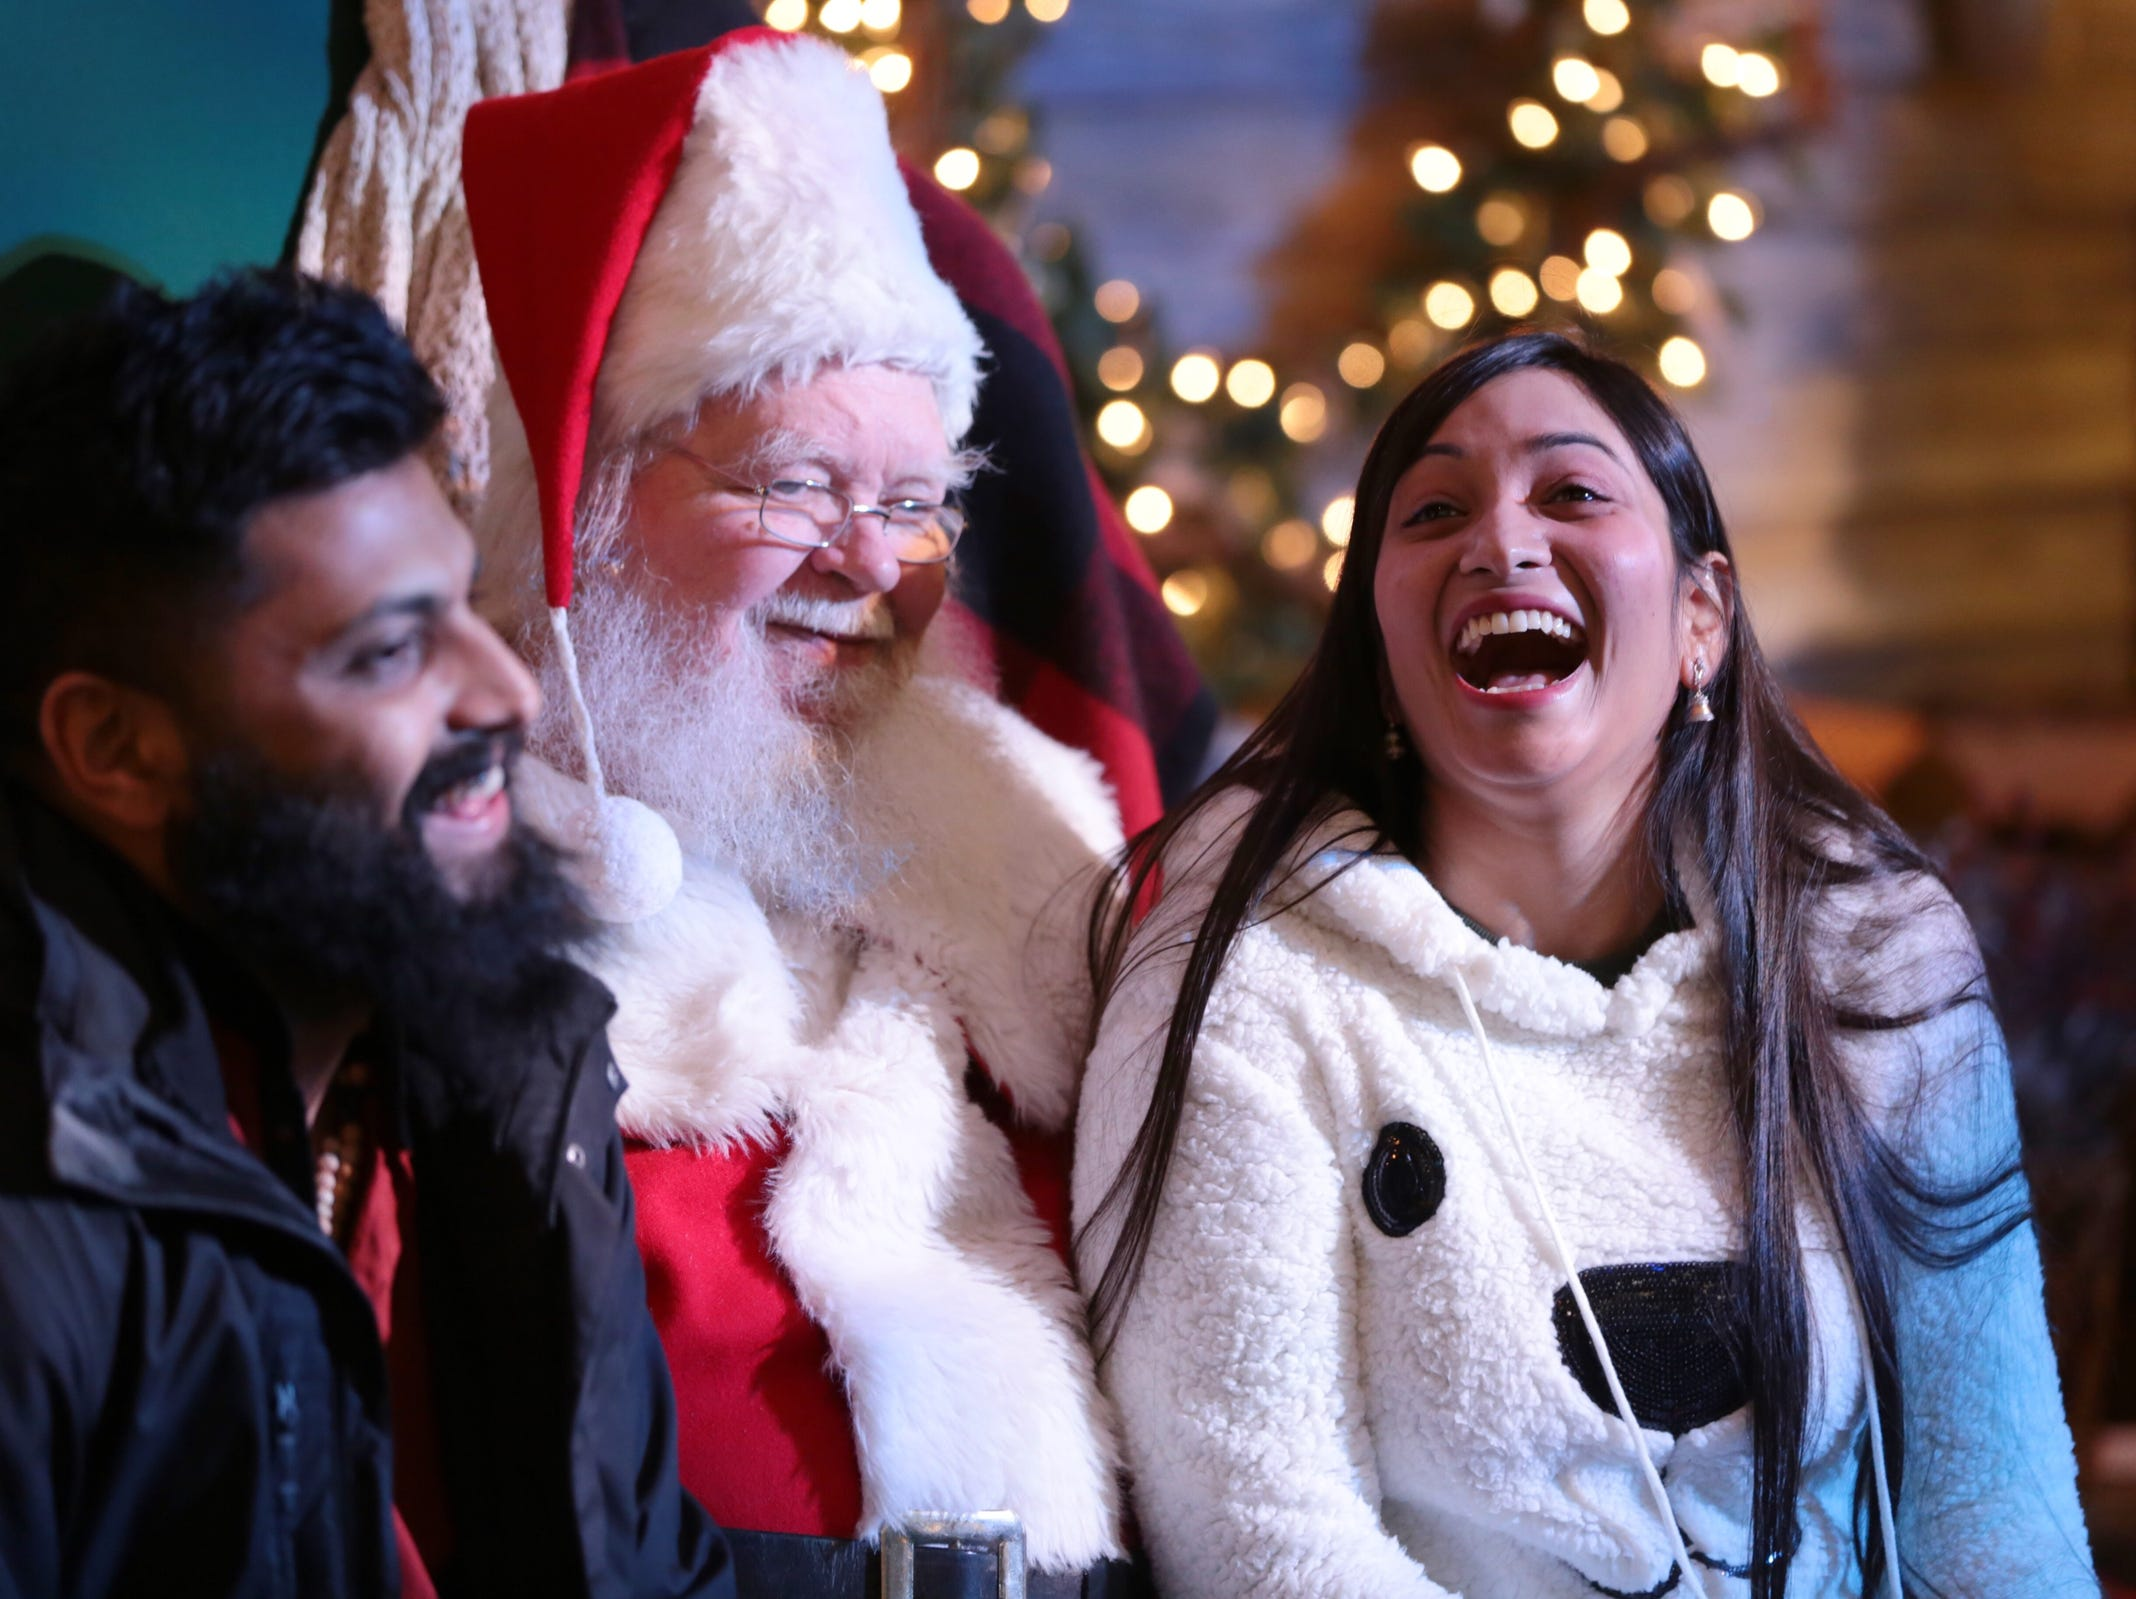 Sachin Puthur (left) of Detroit and Sheenam Gupta of Dallas, TX sit with Santa Claus inside One Campus Martius during the annual tree lighting event at Campus Martius Park in downtown Detroit on Friday, November 16, 2018.